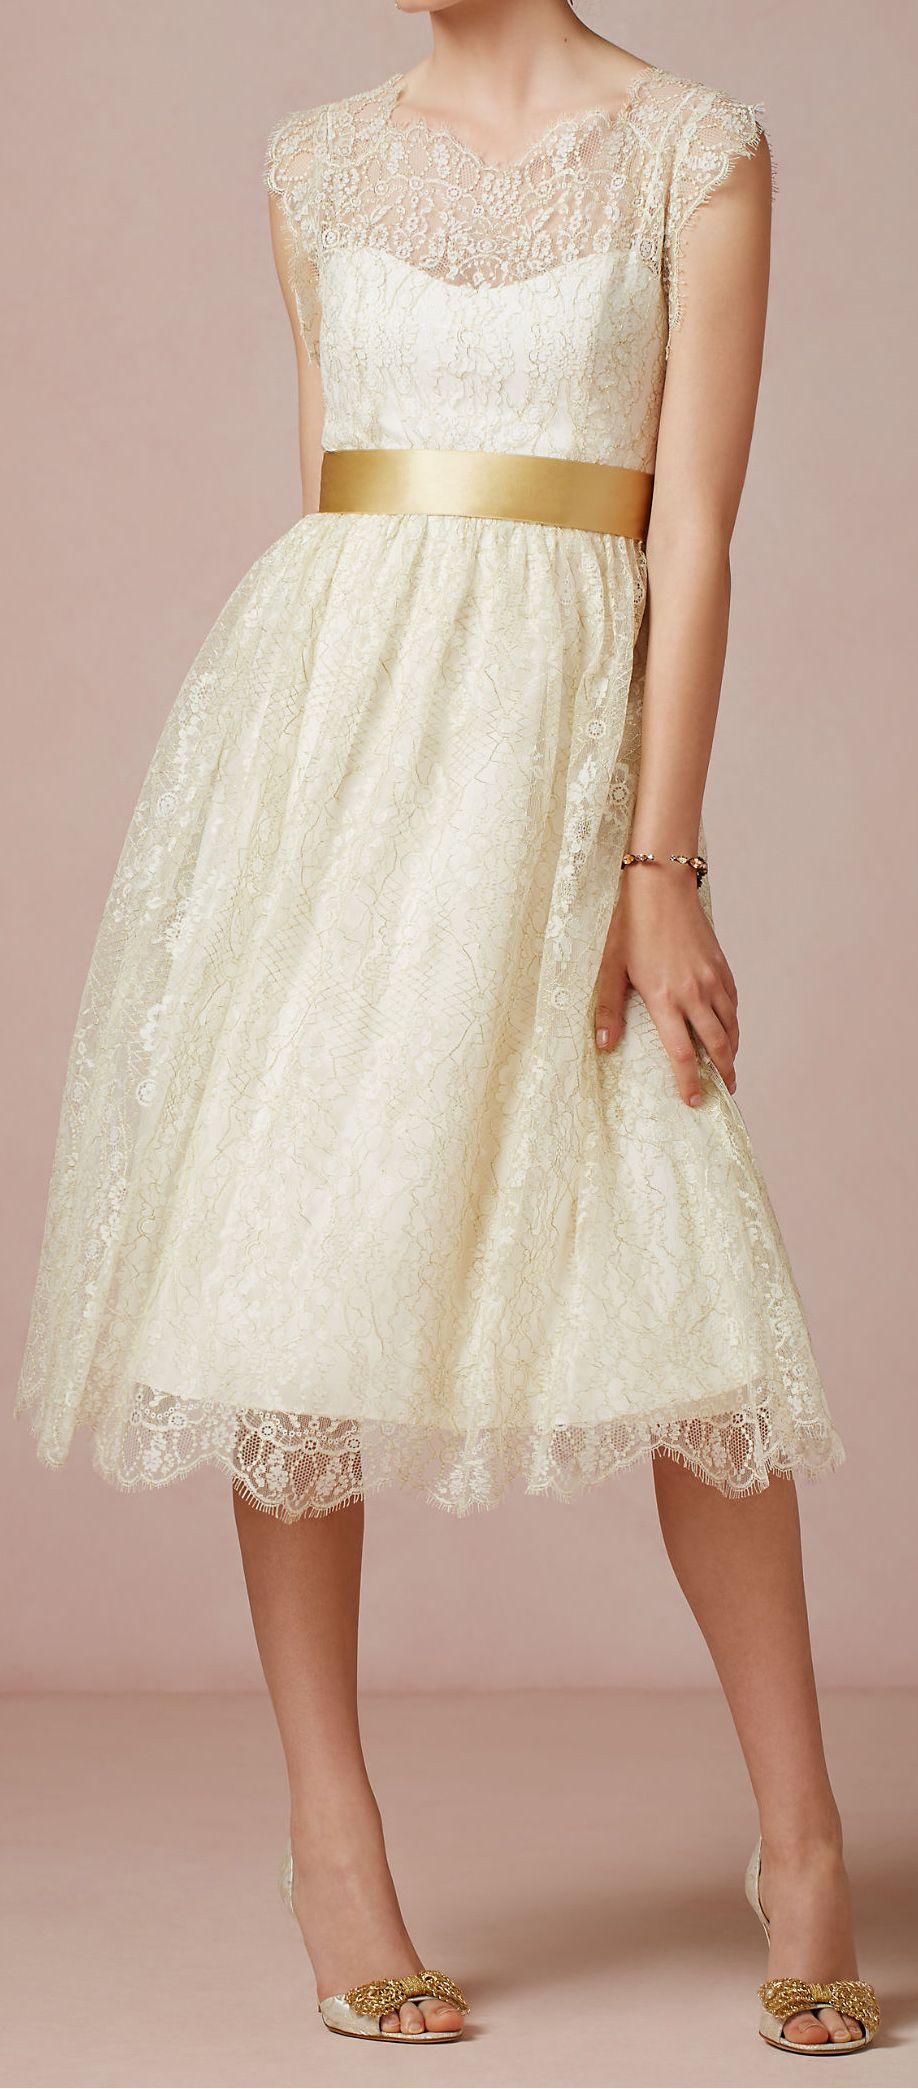 this white dress with gold ribbon.. | I would like to wear ...